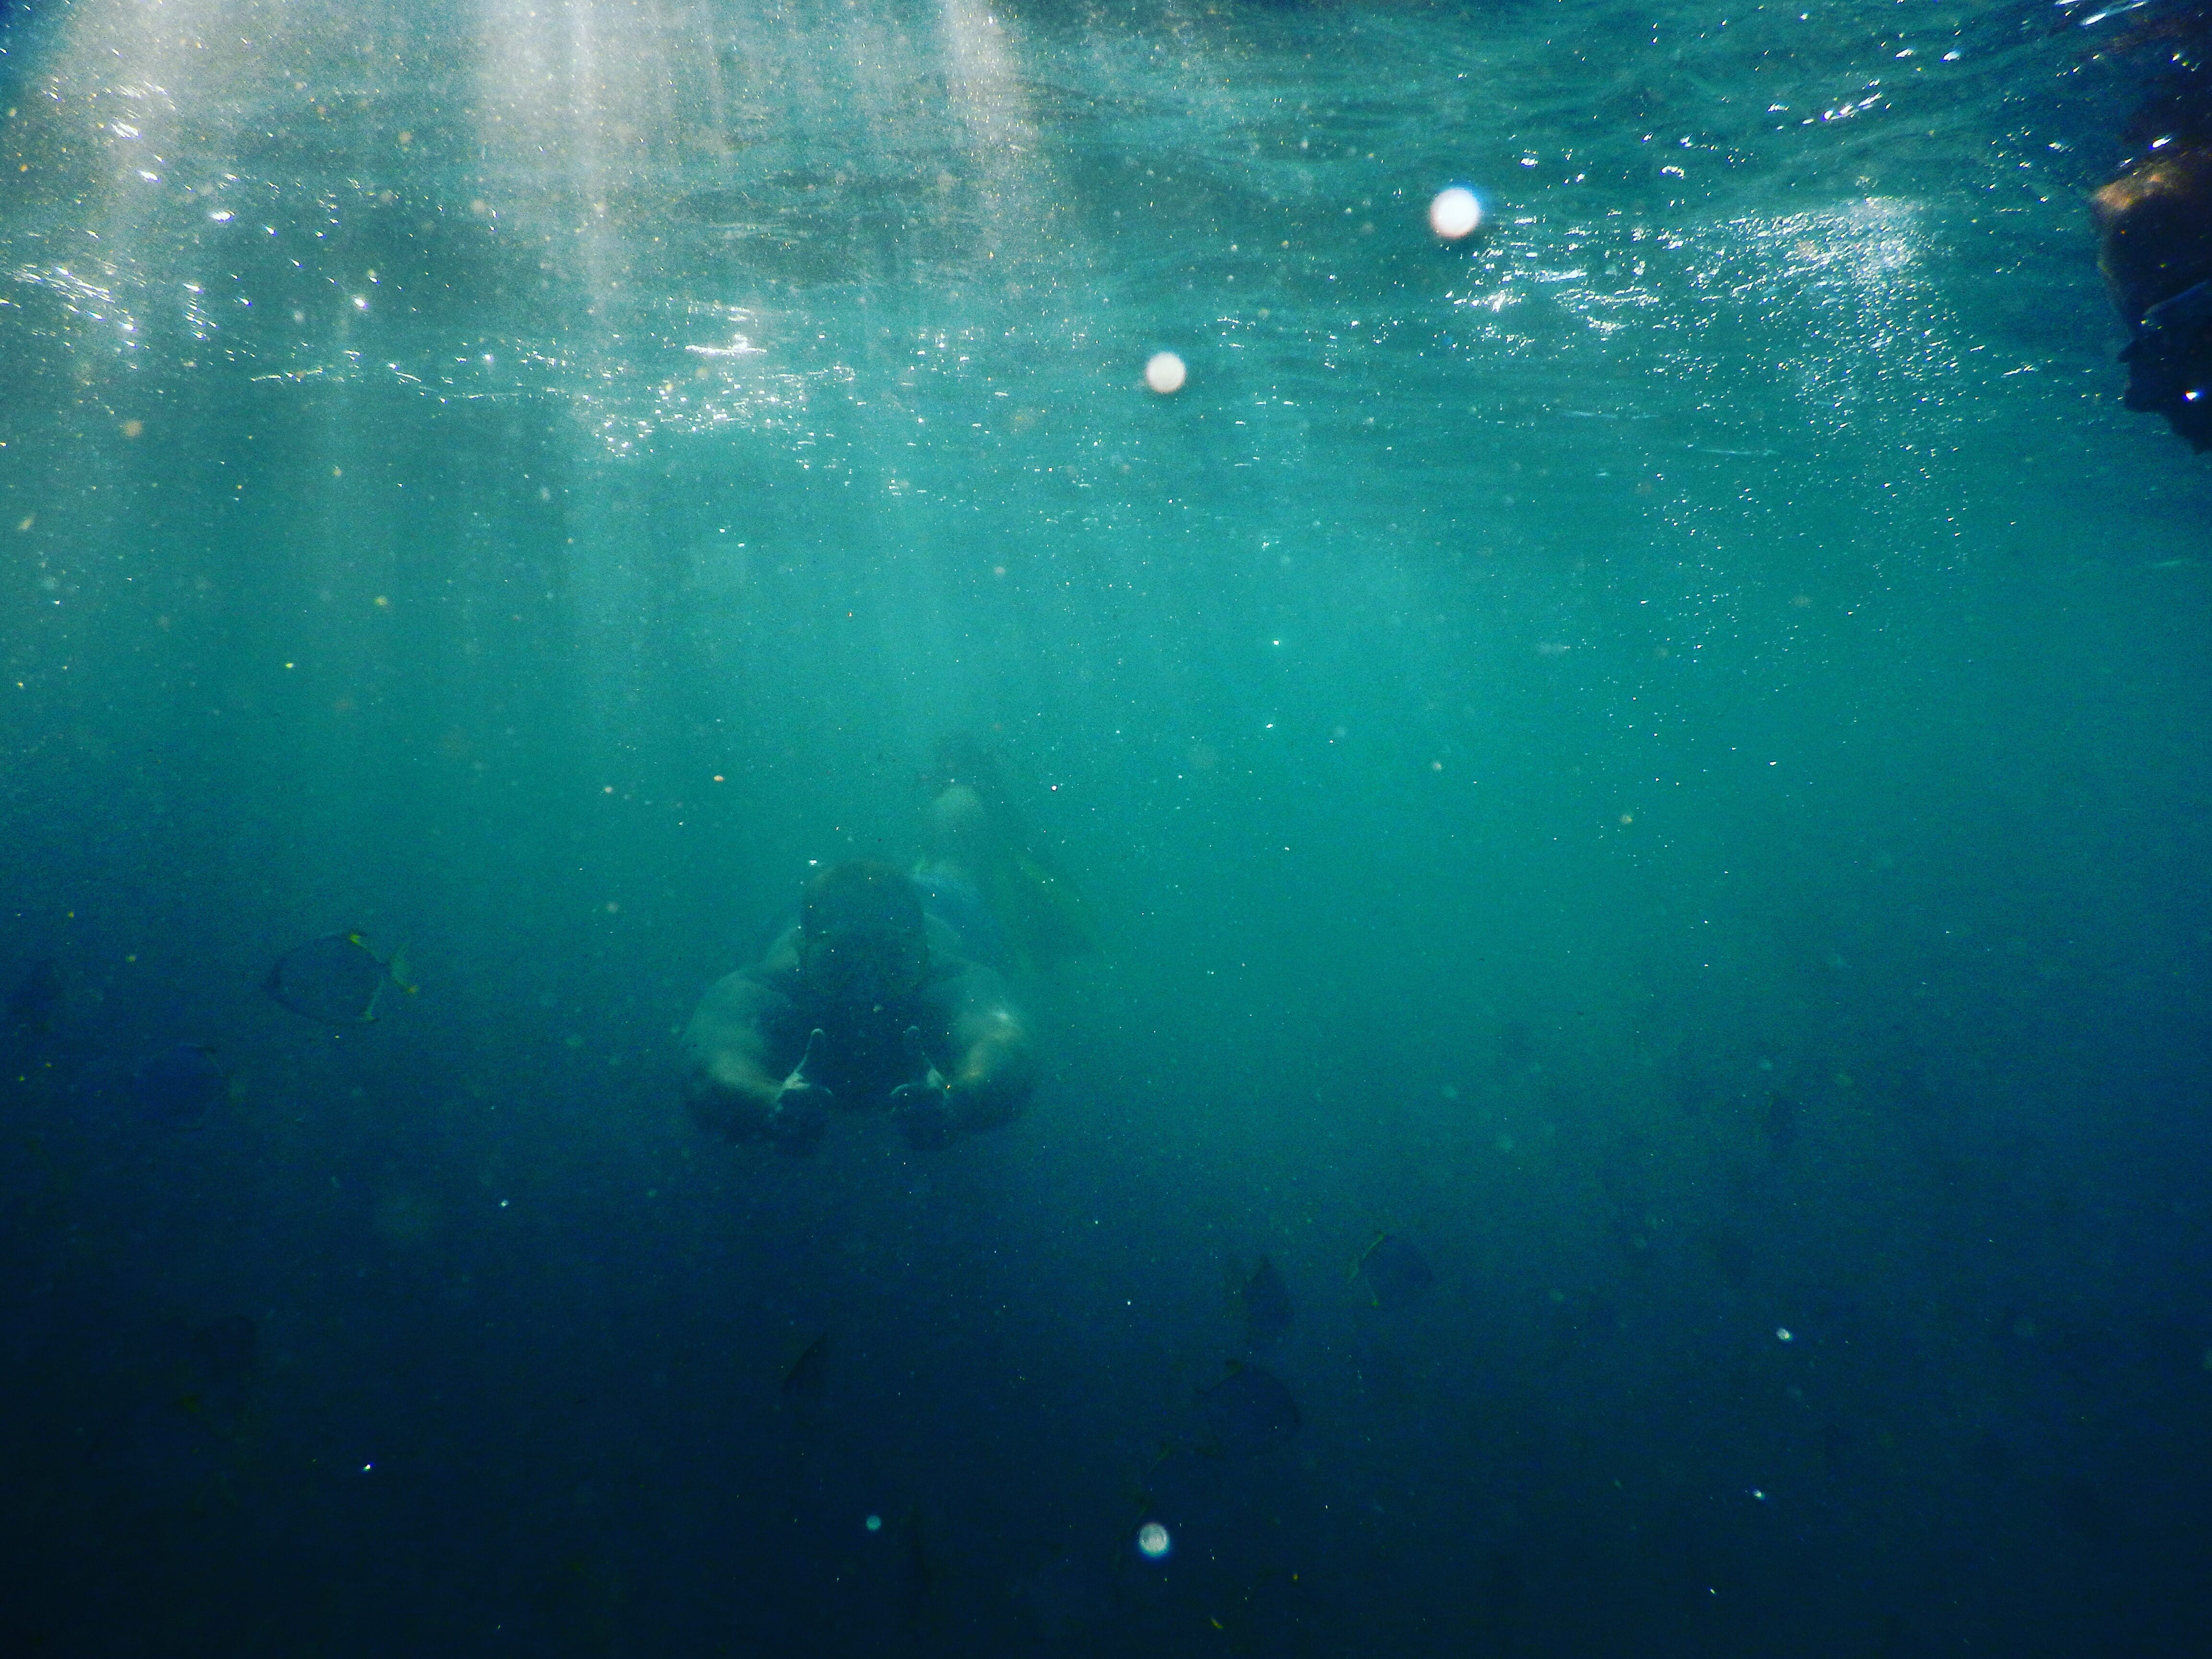 Underwater by Ryleigh Fronis